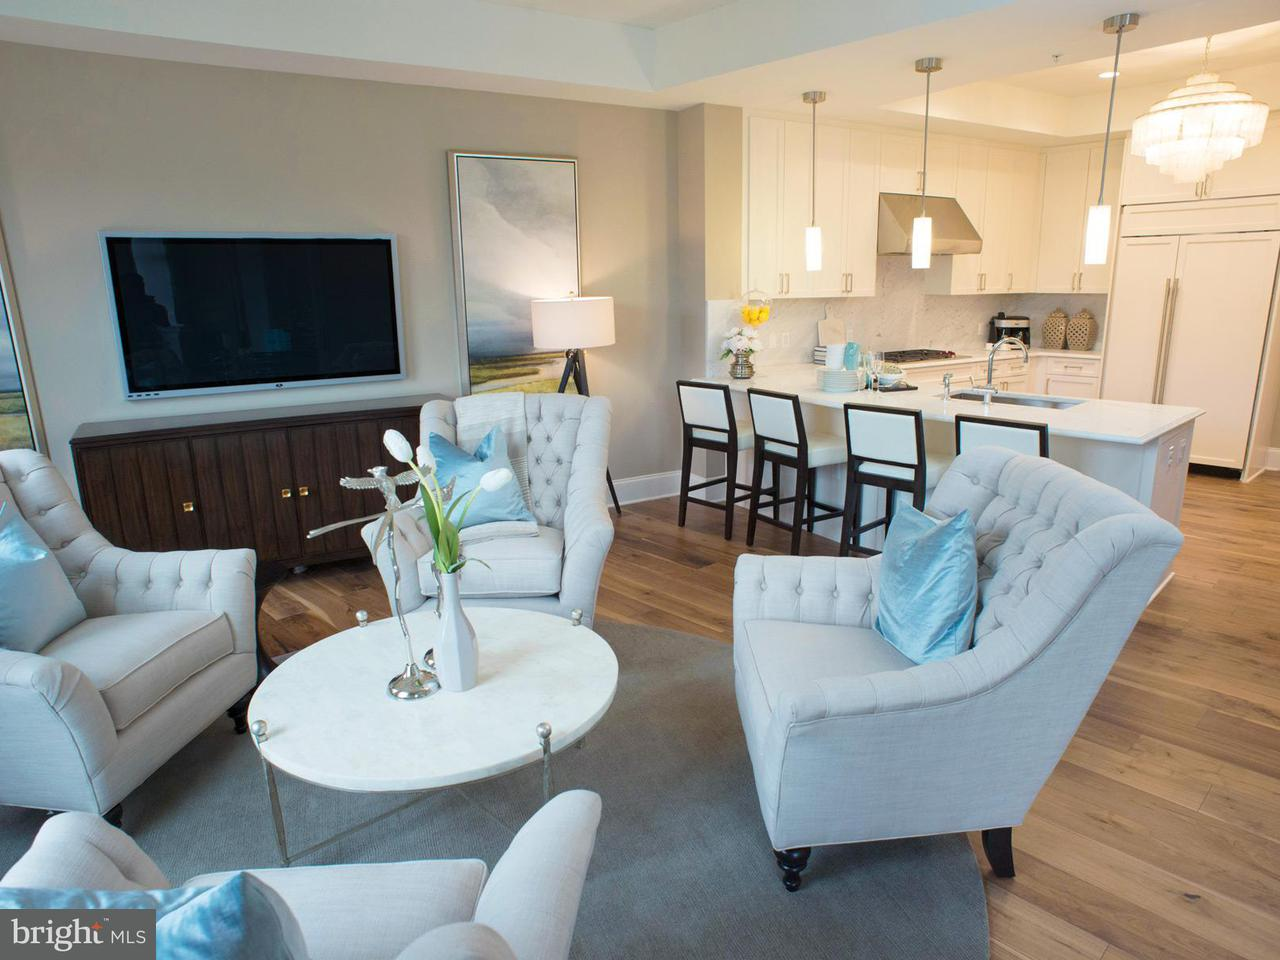 Additional photo for property listing at 8111 RIVER RD #444 8111 RIVER RD #444 Bethesda, Maryland 20817 United States